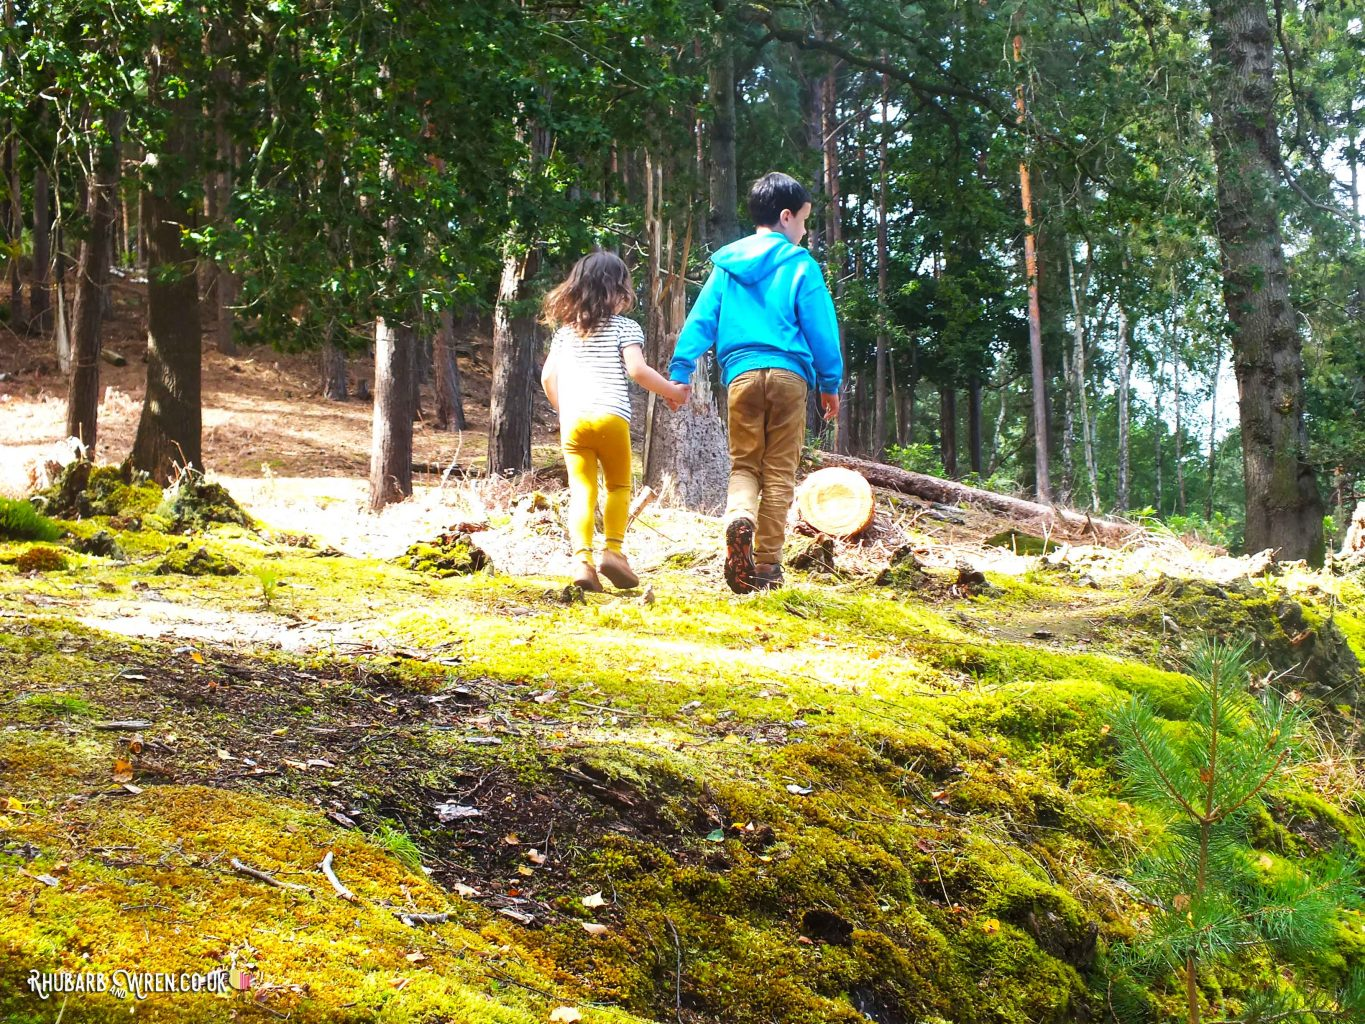 Children walking hand-in-hand through forest